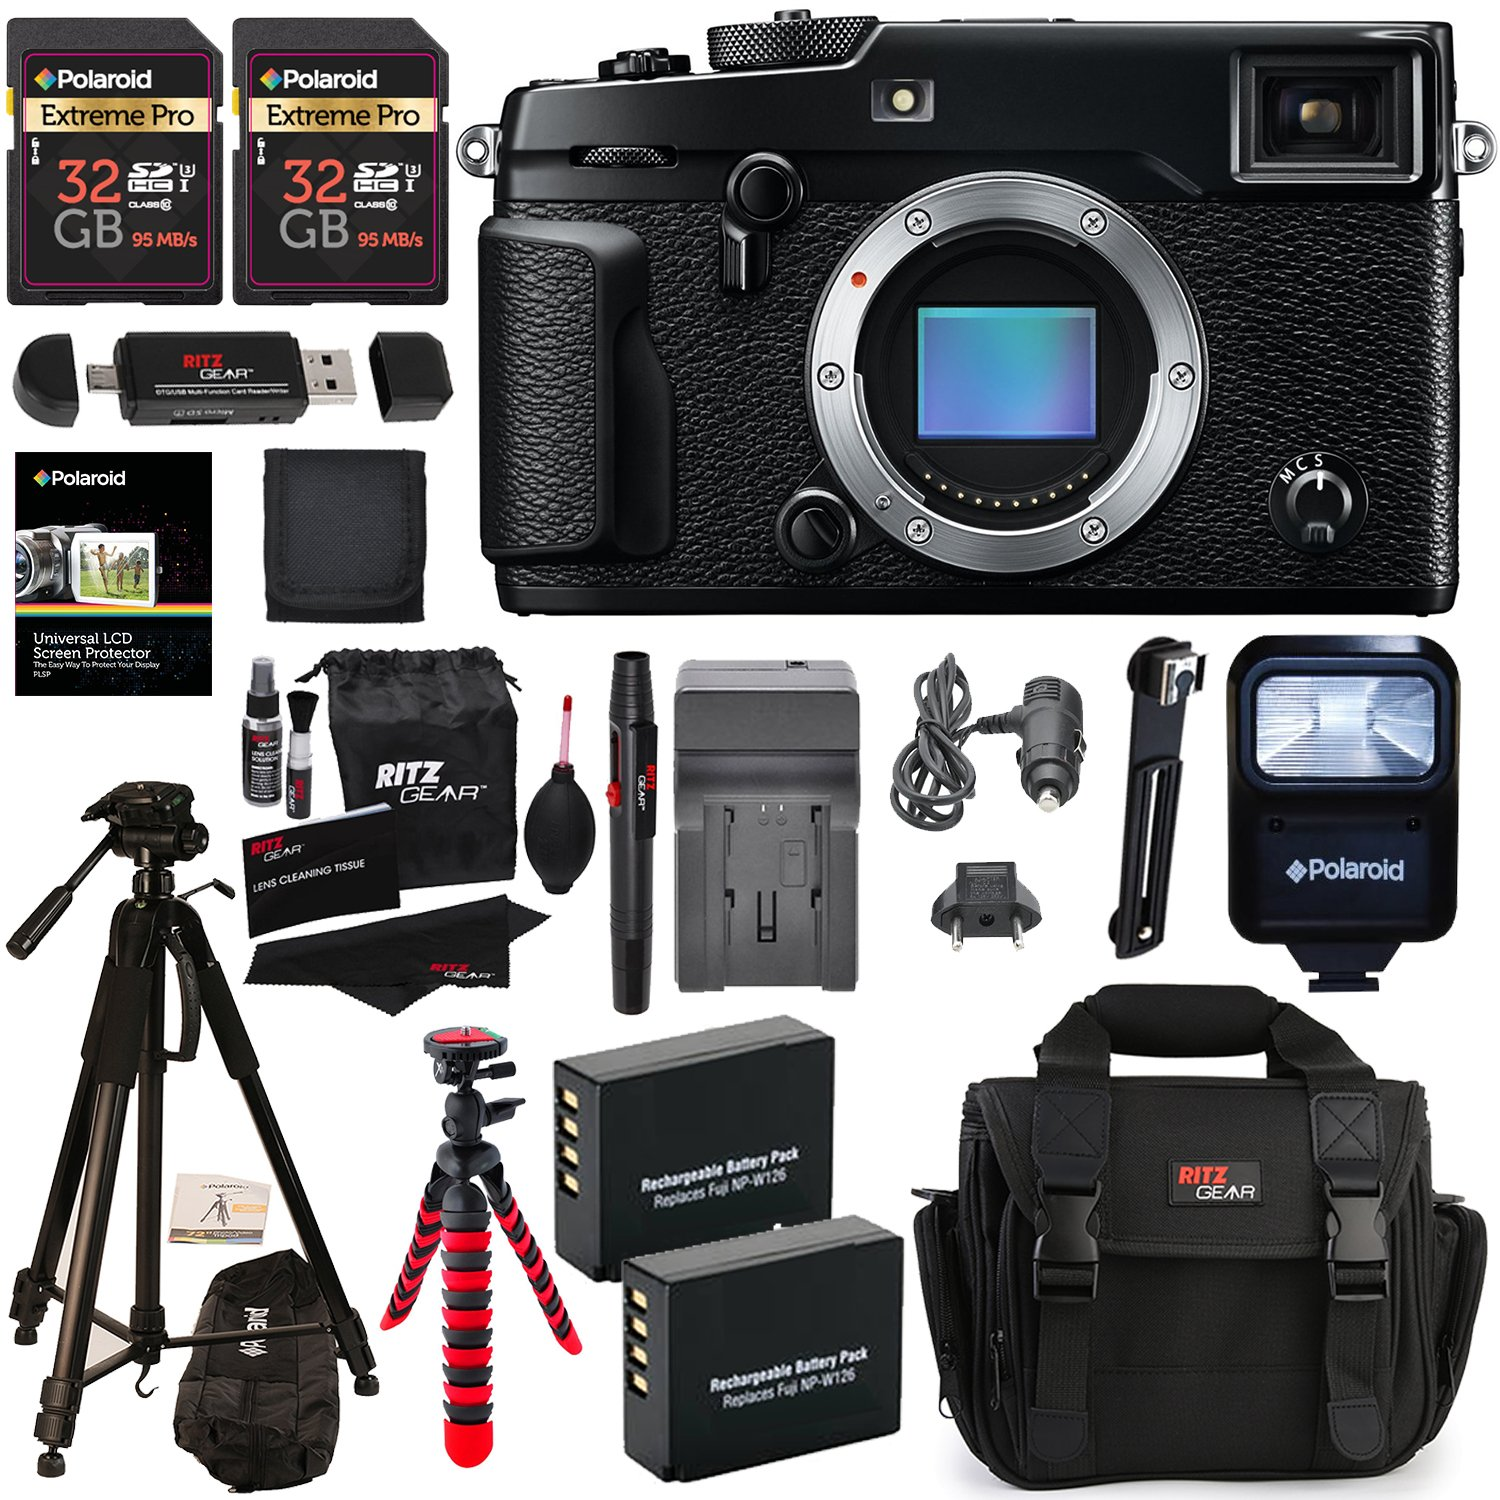 Fujifilm X-Pro2 Body Professional Mirrorless Camera + 32GB 2 Pack + Ritz Gear Camera Case + Polaroid 72'' Tripod + 2 Batteries + Charger + Card Reader + Cleaning Kit + Memory Card Wallet Bundle